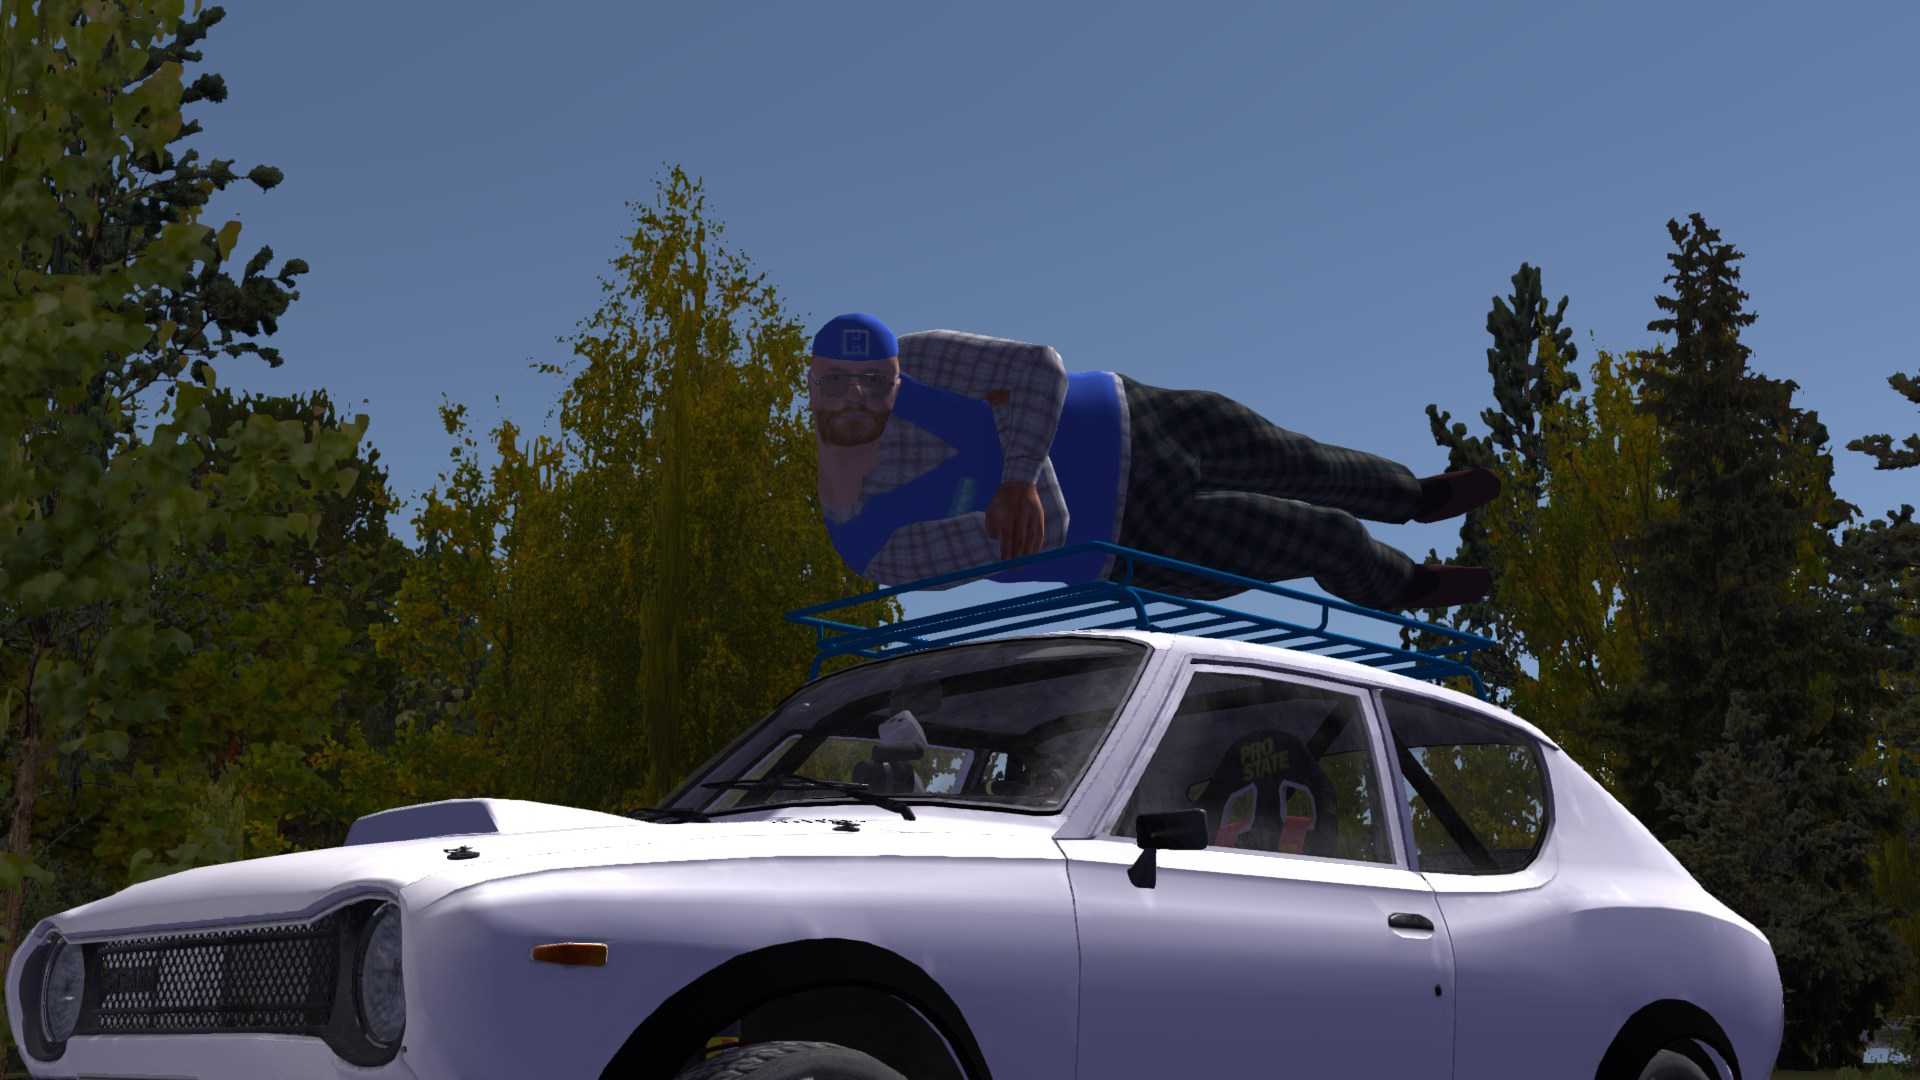 Attachable Roofrack Mod - My Summer Car Mods | GameWatcher